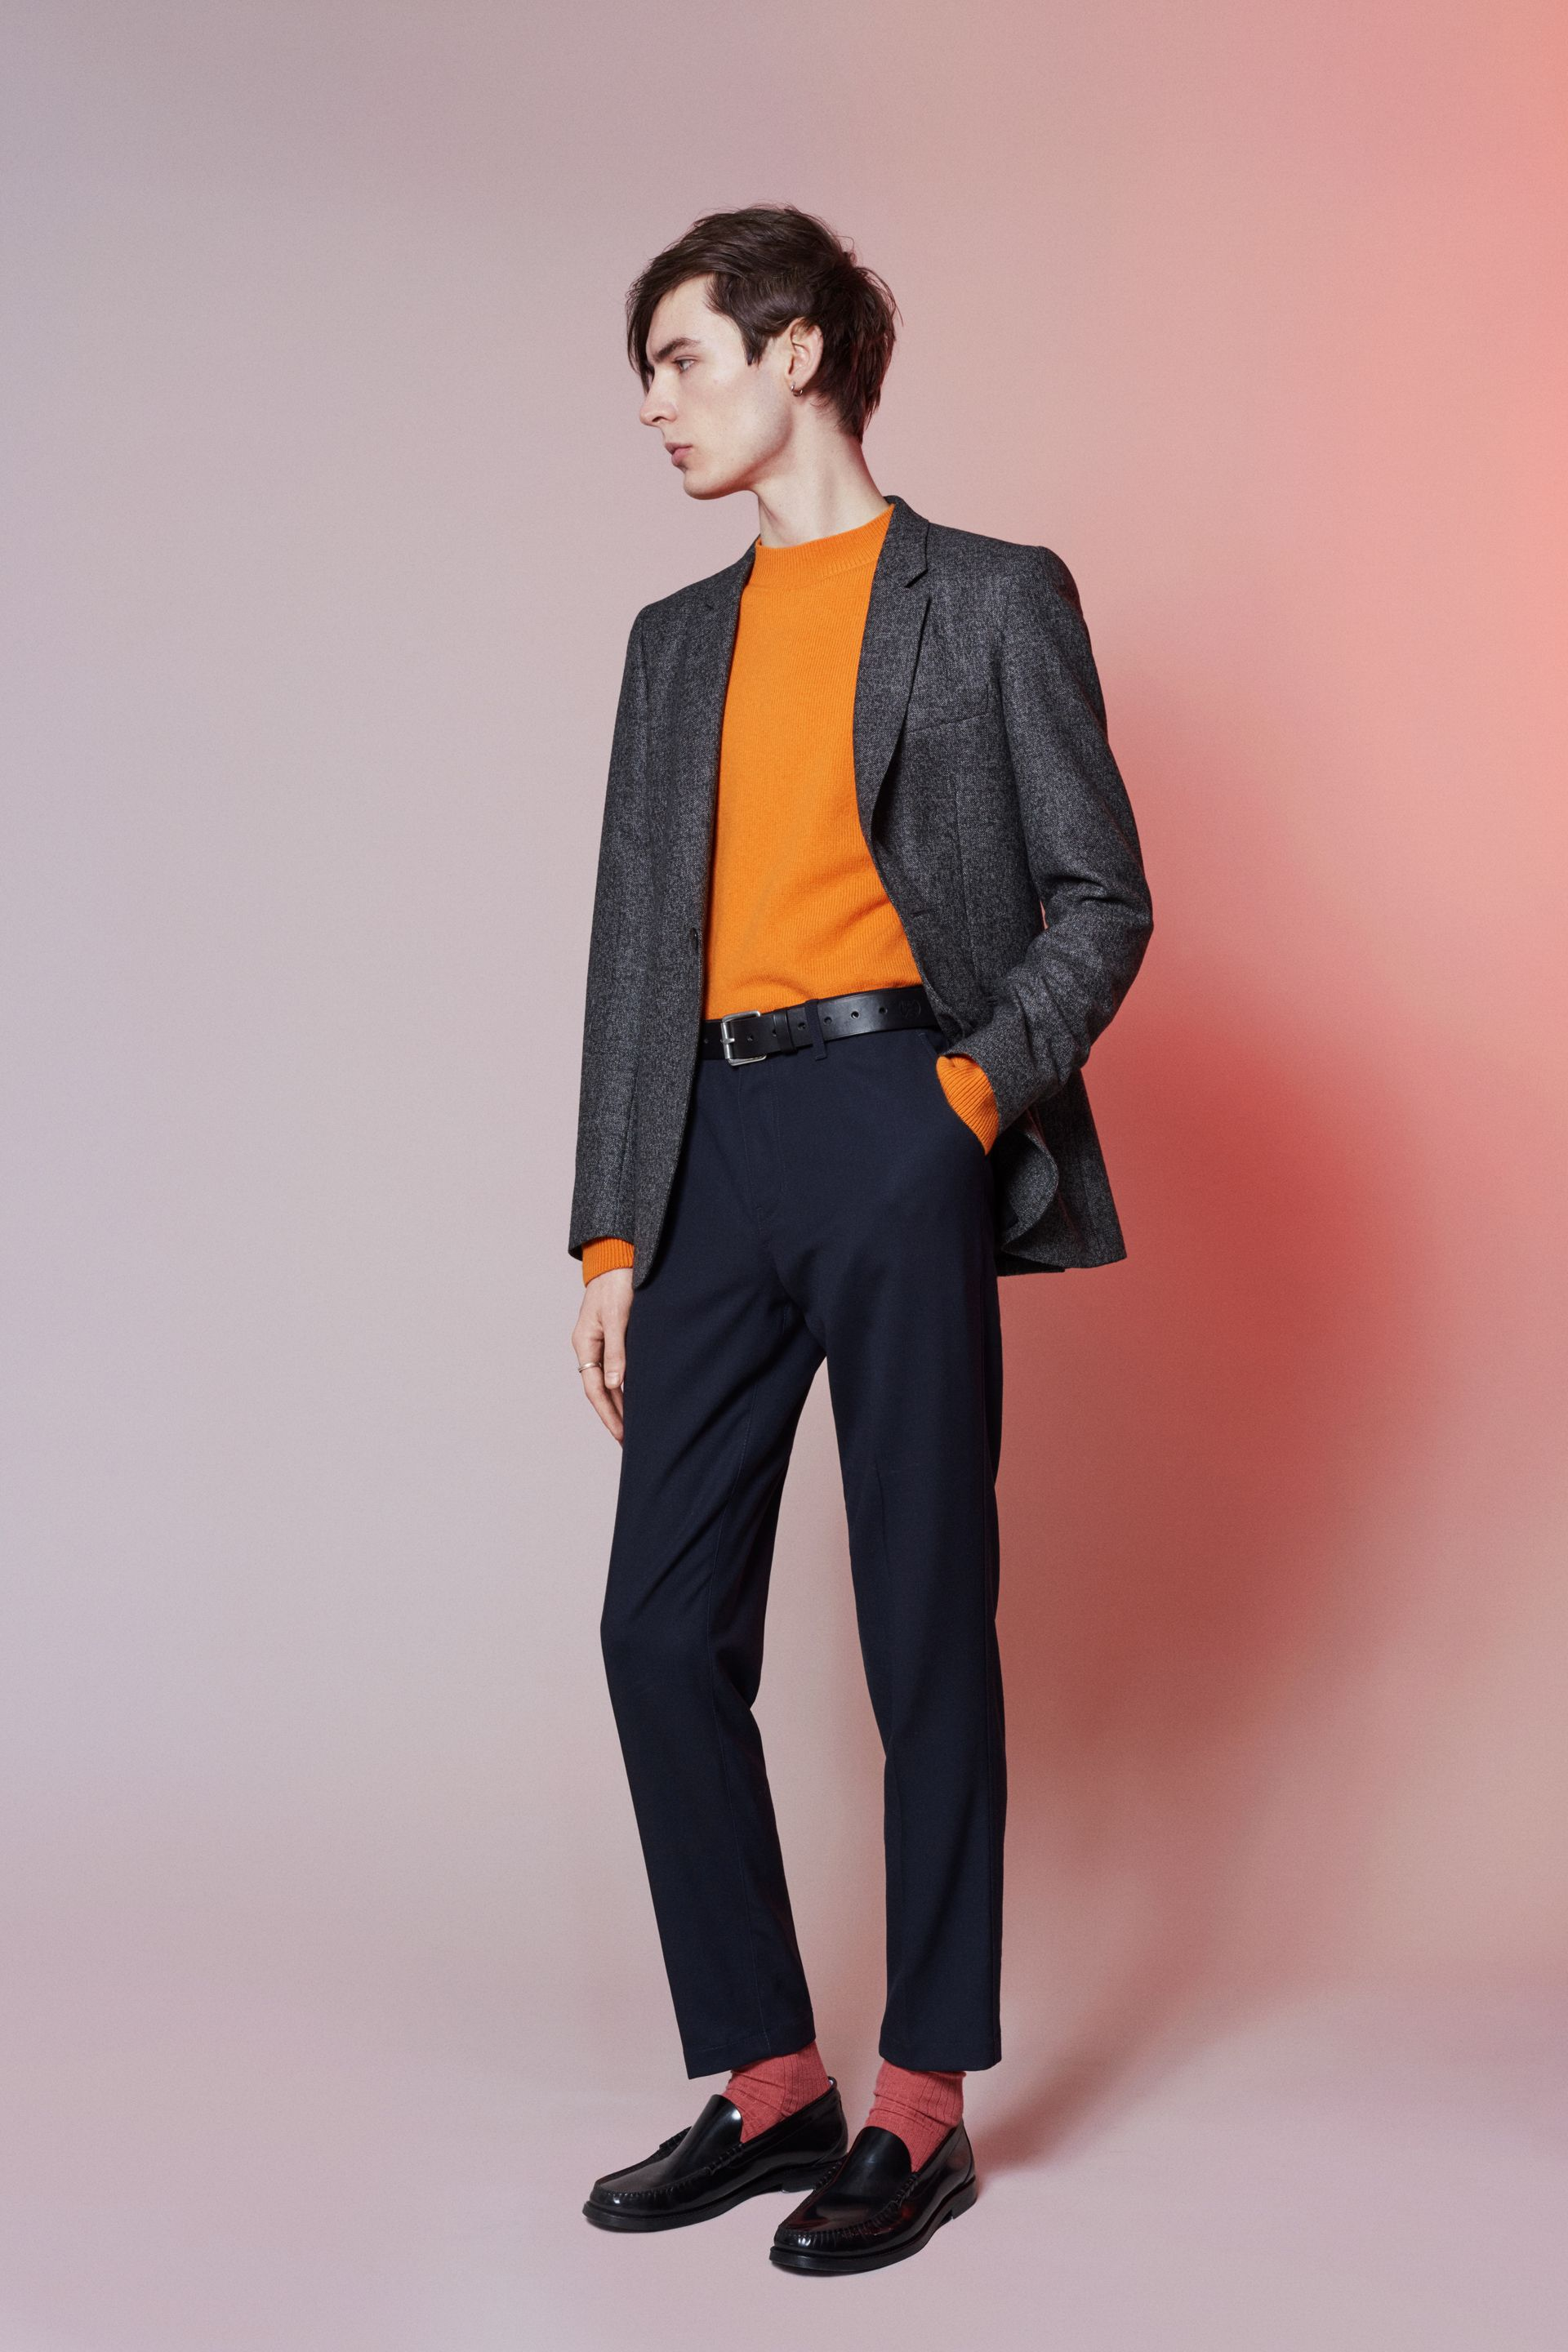 2019 year looks- Winter Nice boys collection by paul smith